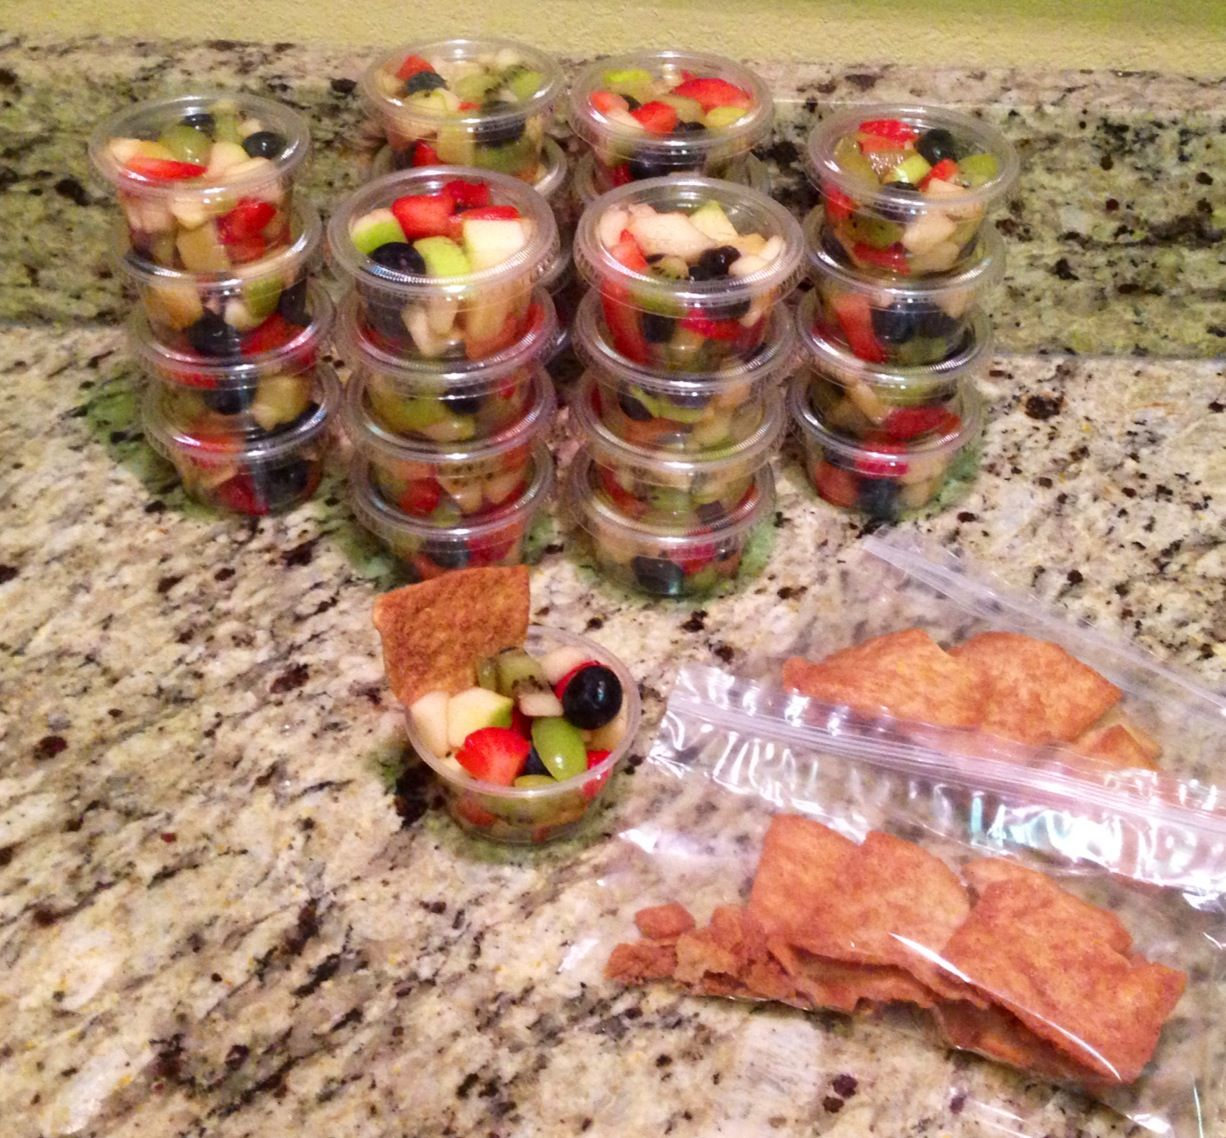 Kindergarten Class Snack- Fruit Salad Cups With Stacy's